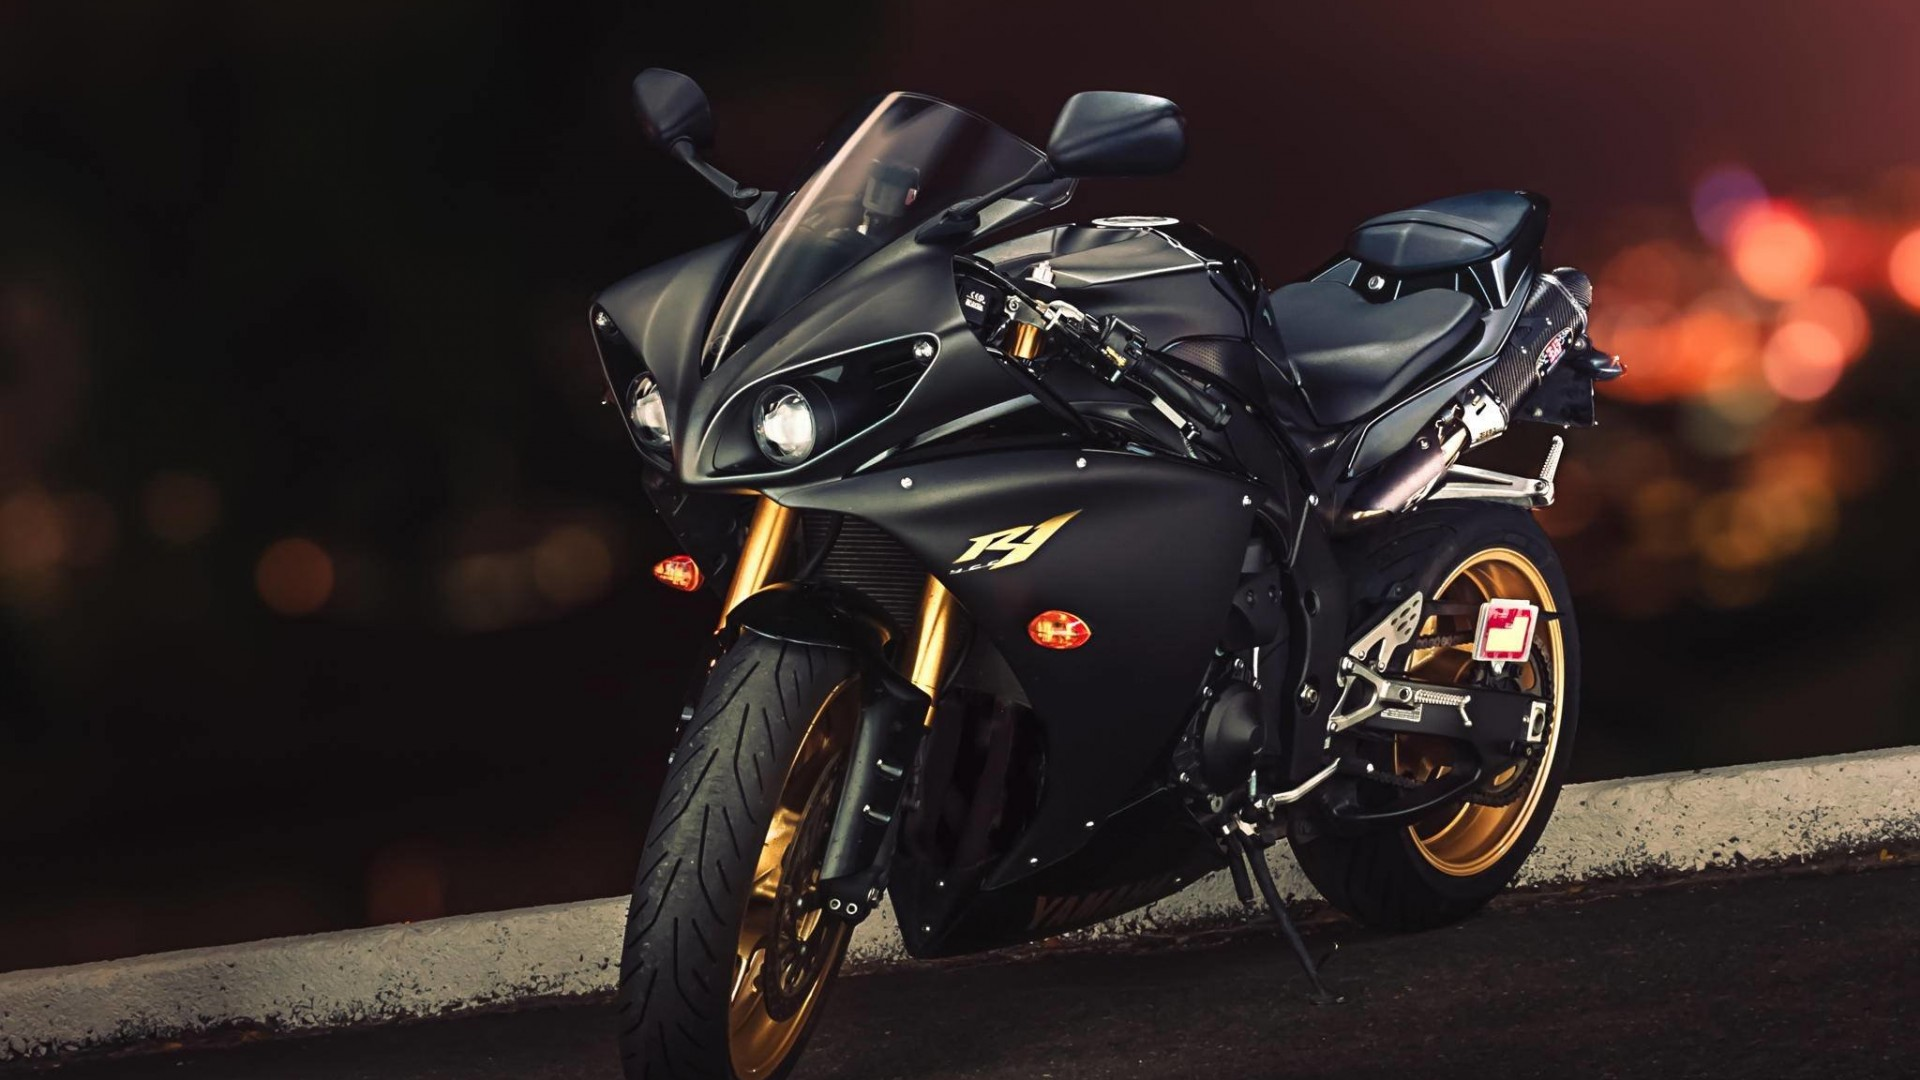 Yamaha YZF-R1 Wallpaper for Desktop 1920x1080